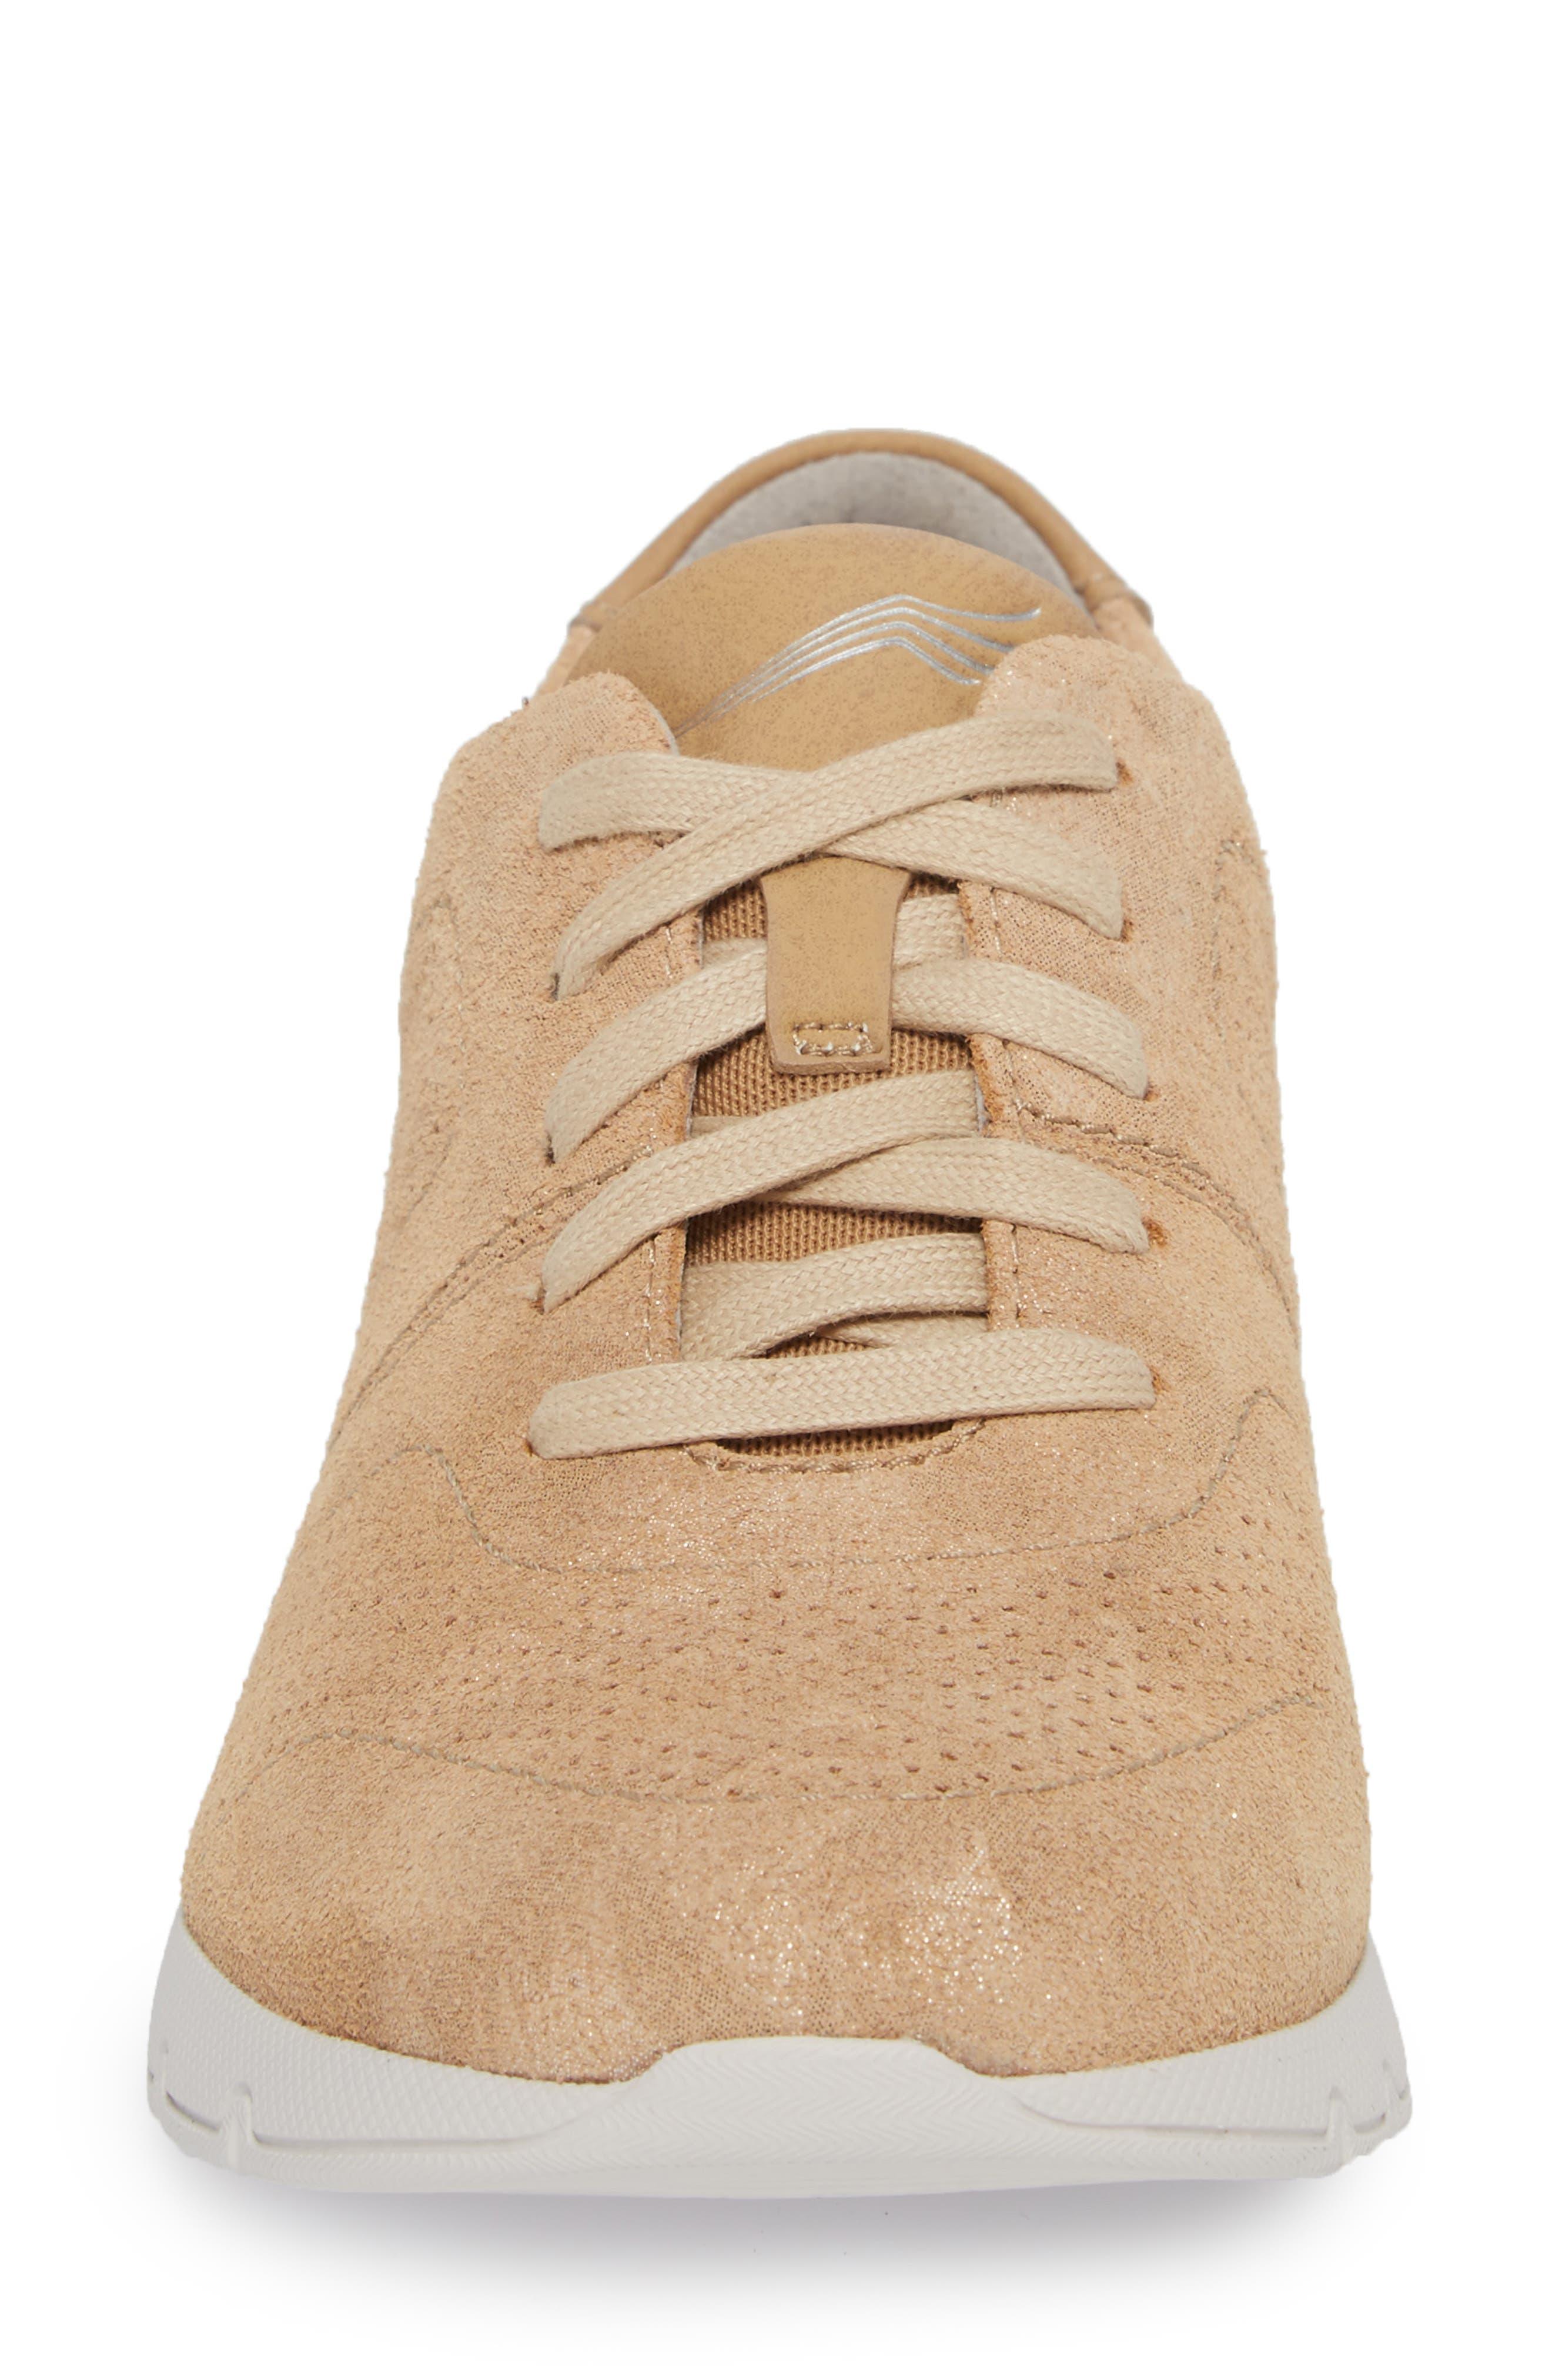 Alissa Sneaker,                             Alternate thumbnail 4, color,                             GOLD PRINT LEATHER